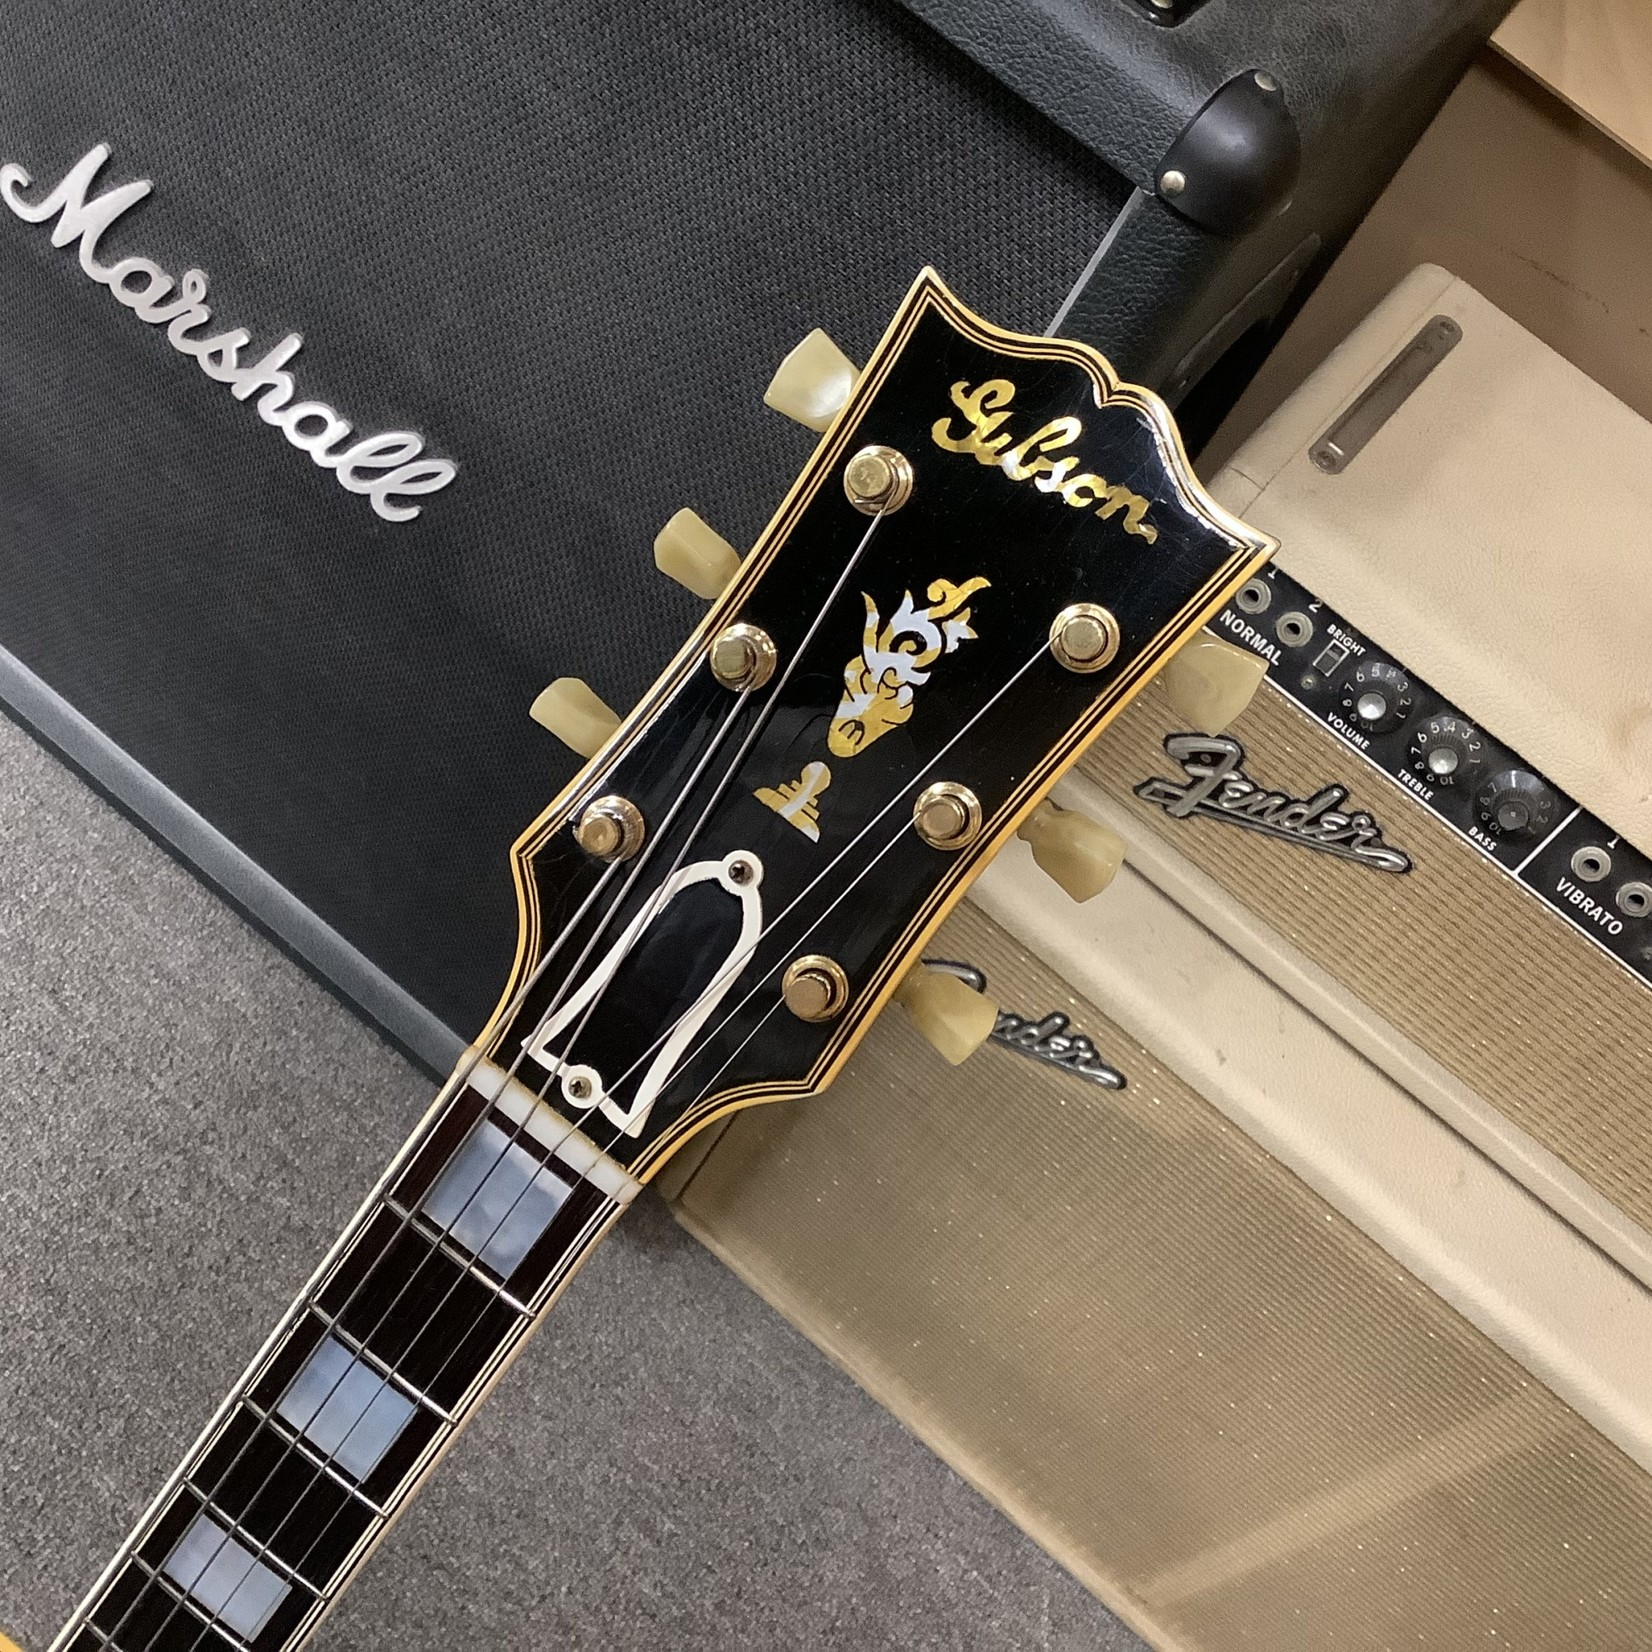 Gibson 1948 Gibson L5 Sunburst Non Cut McCarty Floating Pickup Assembly